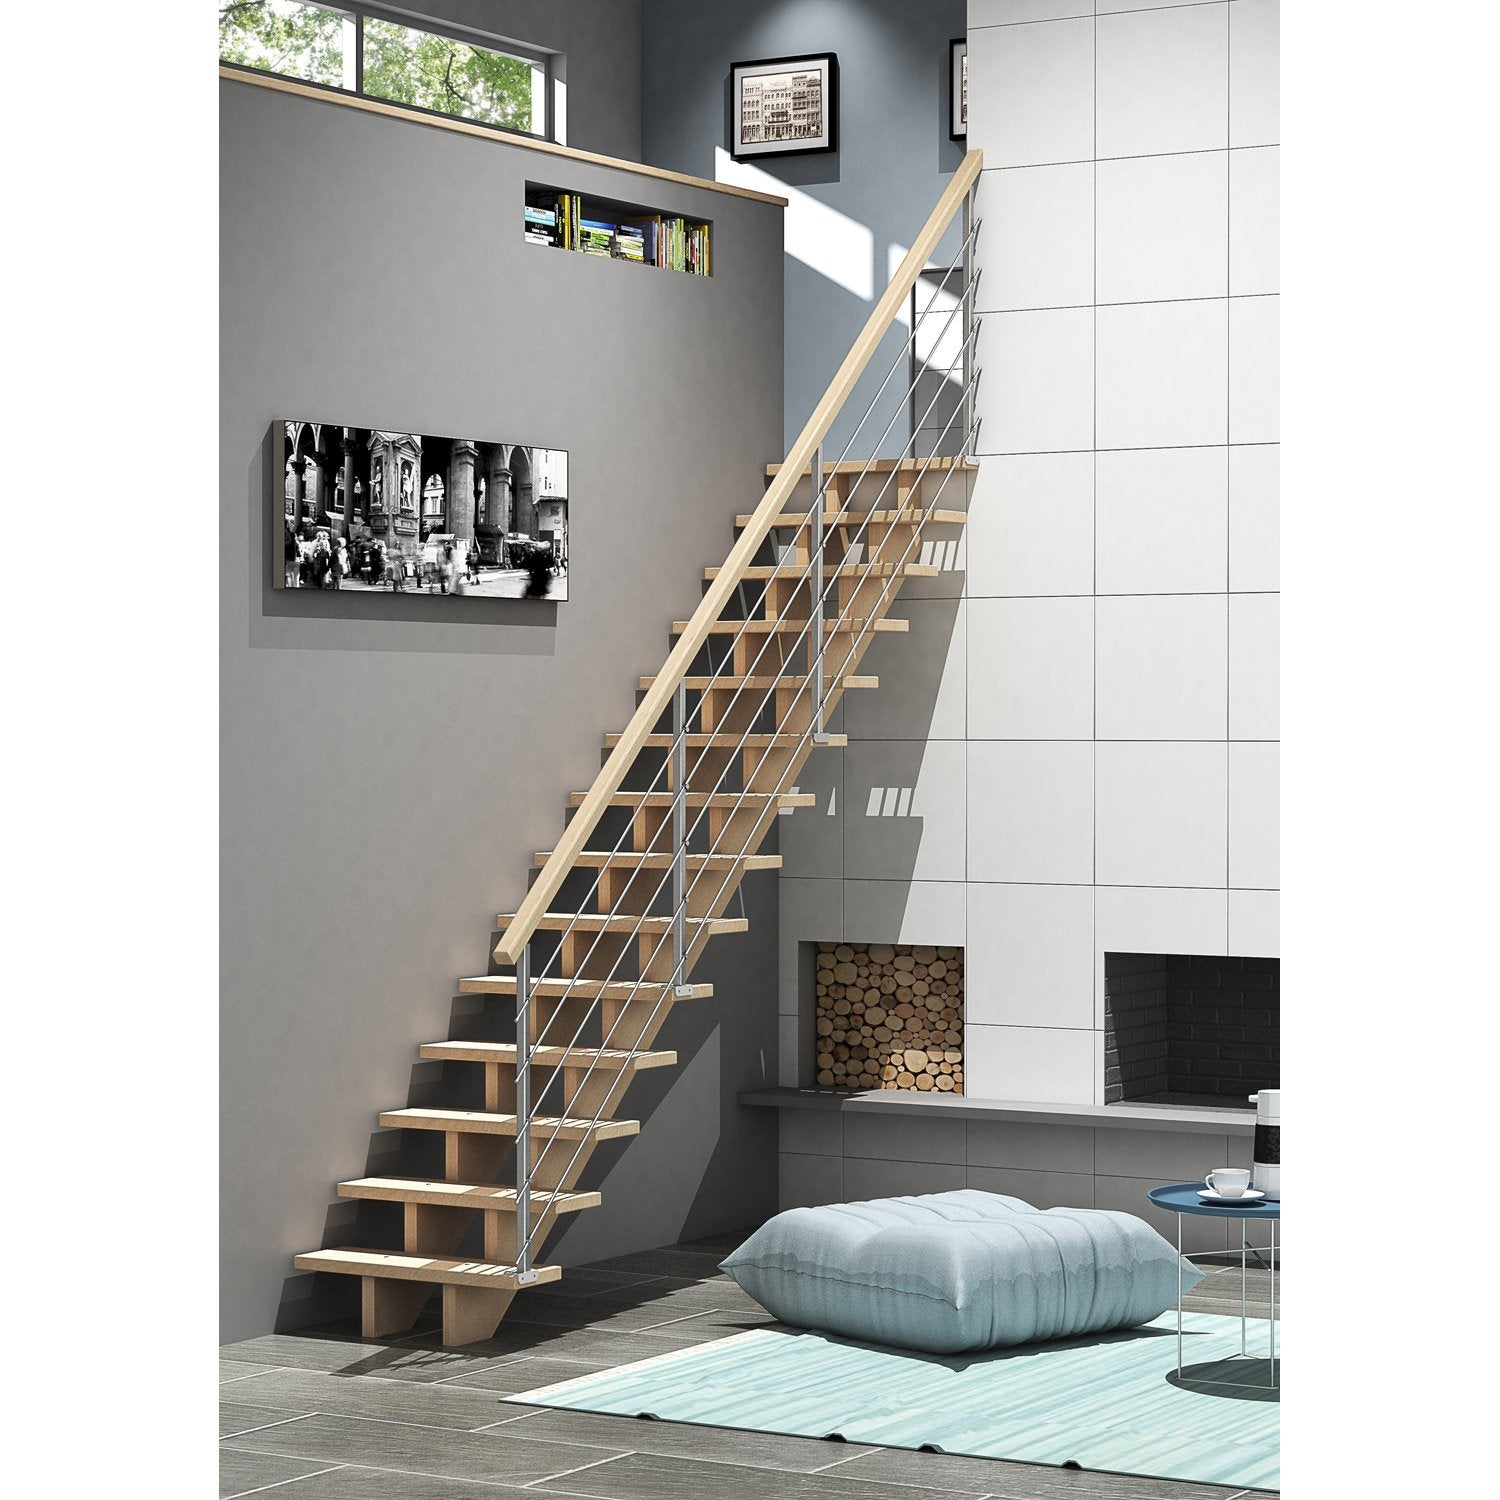 escalier droit allure tube structure bois marche bois. Black Bedroom Furniture Sets. Home Design Ideas